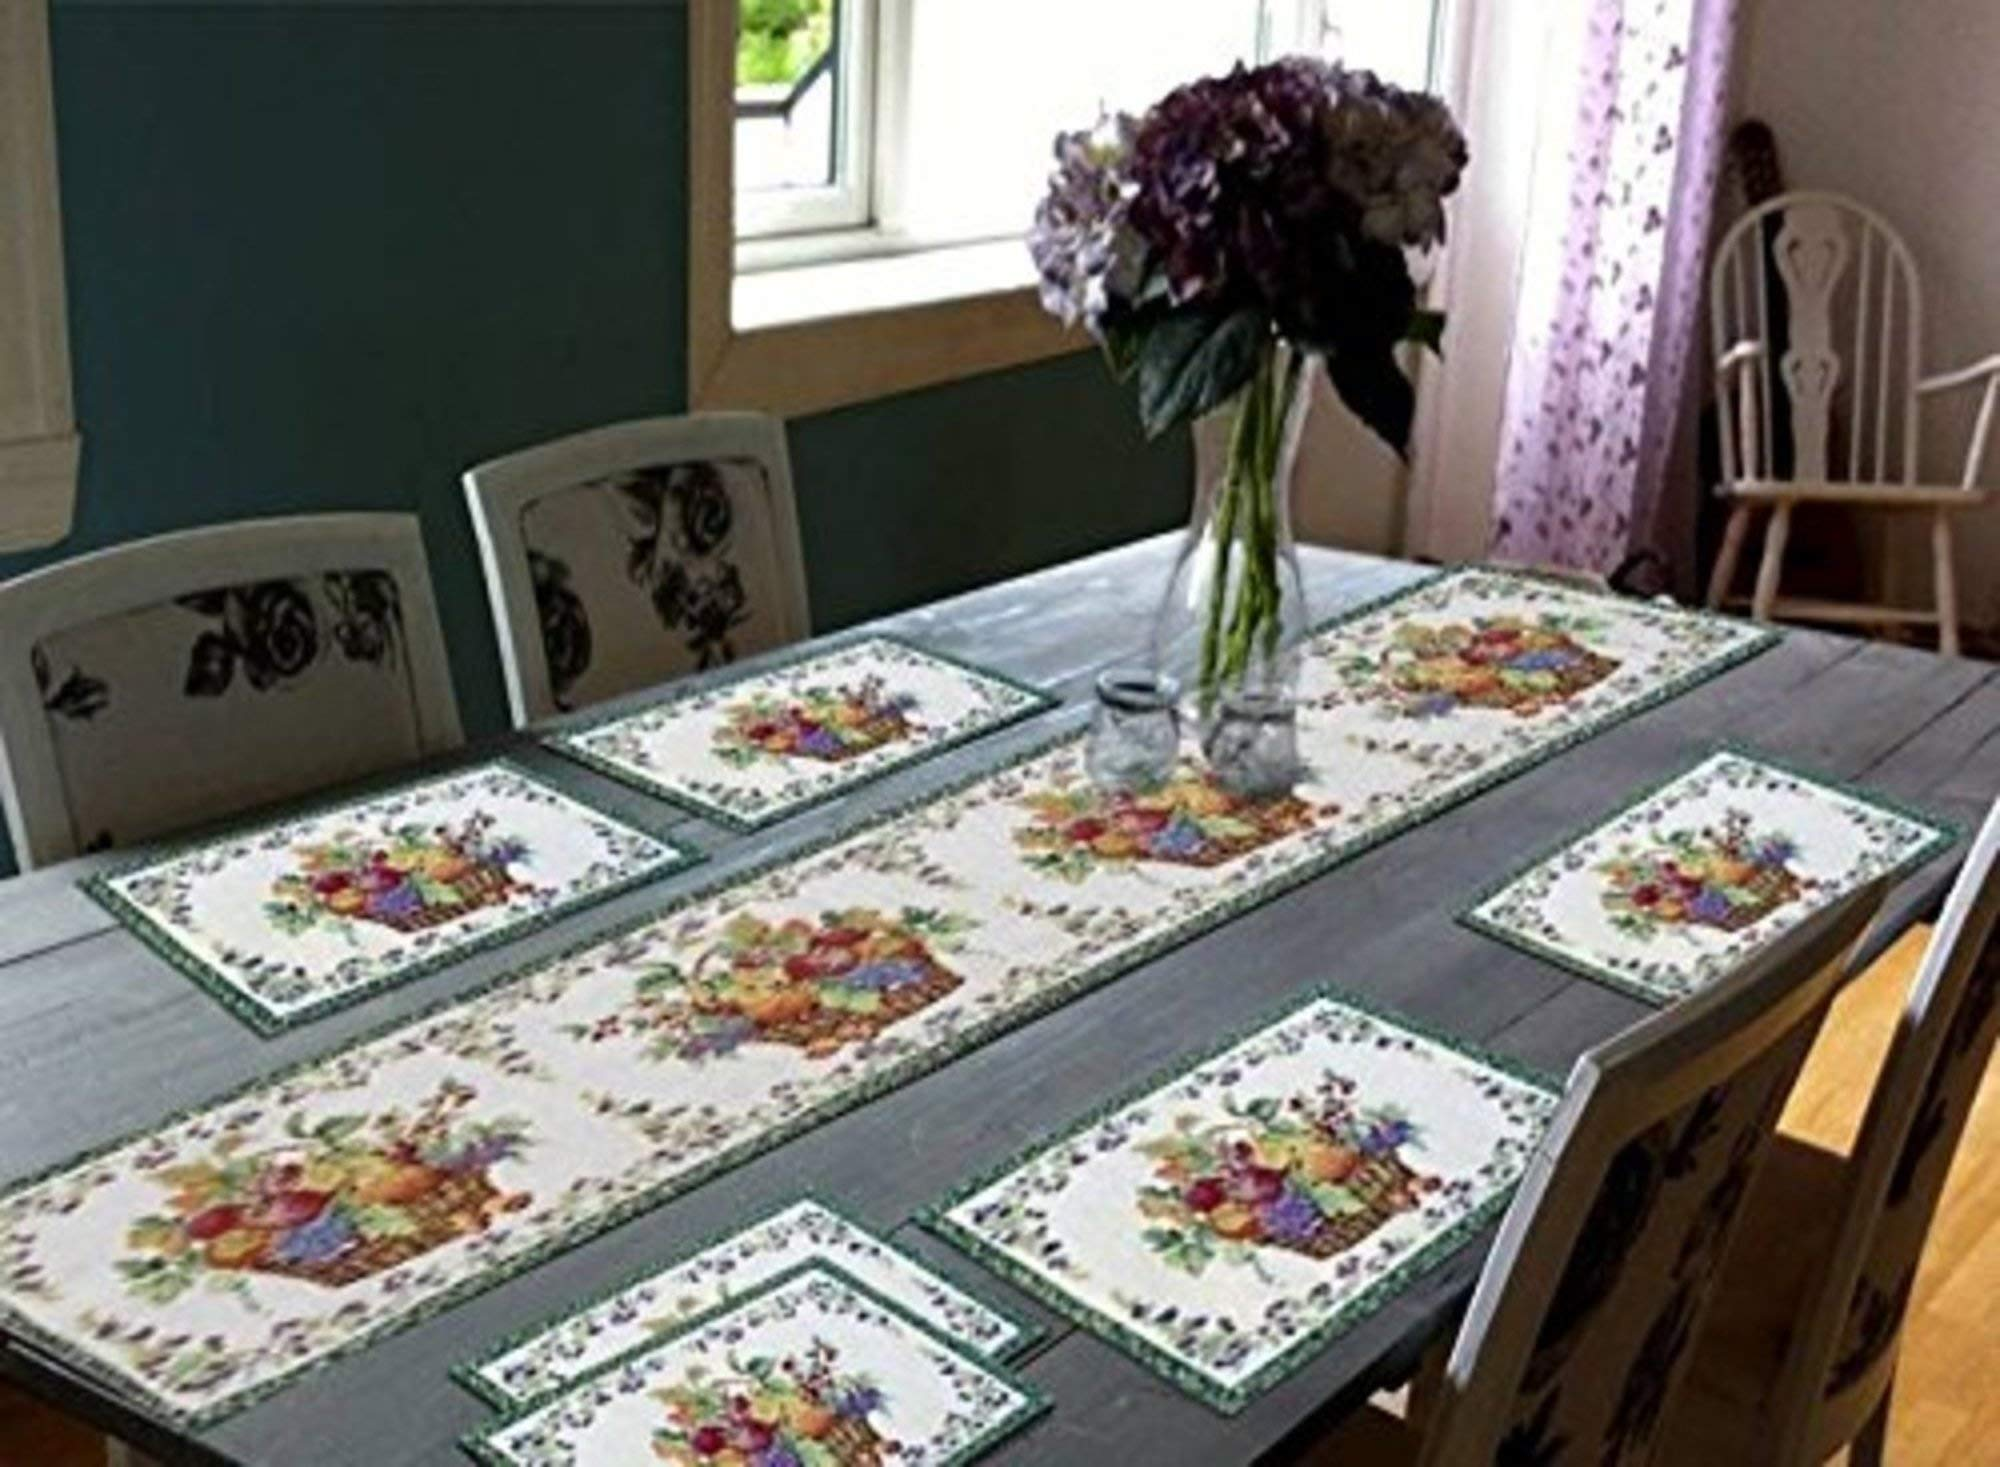 Galaxy Home Decor Dining Table Runner Wi Buy Online In Canada At Desertcart